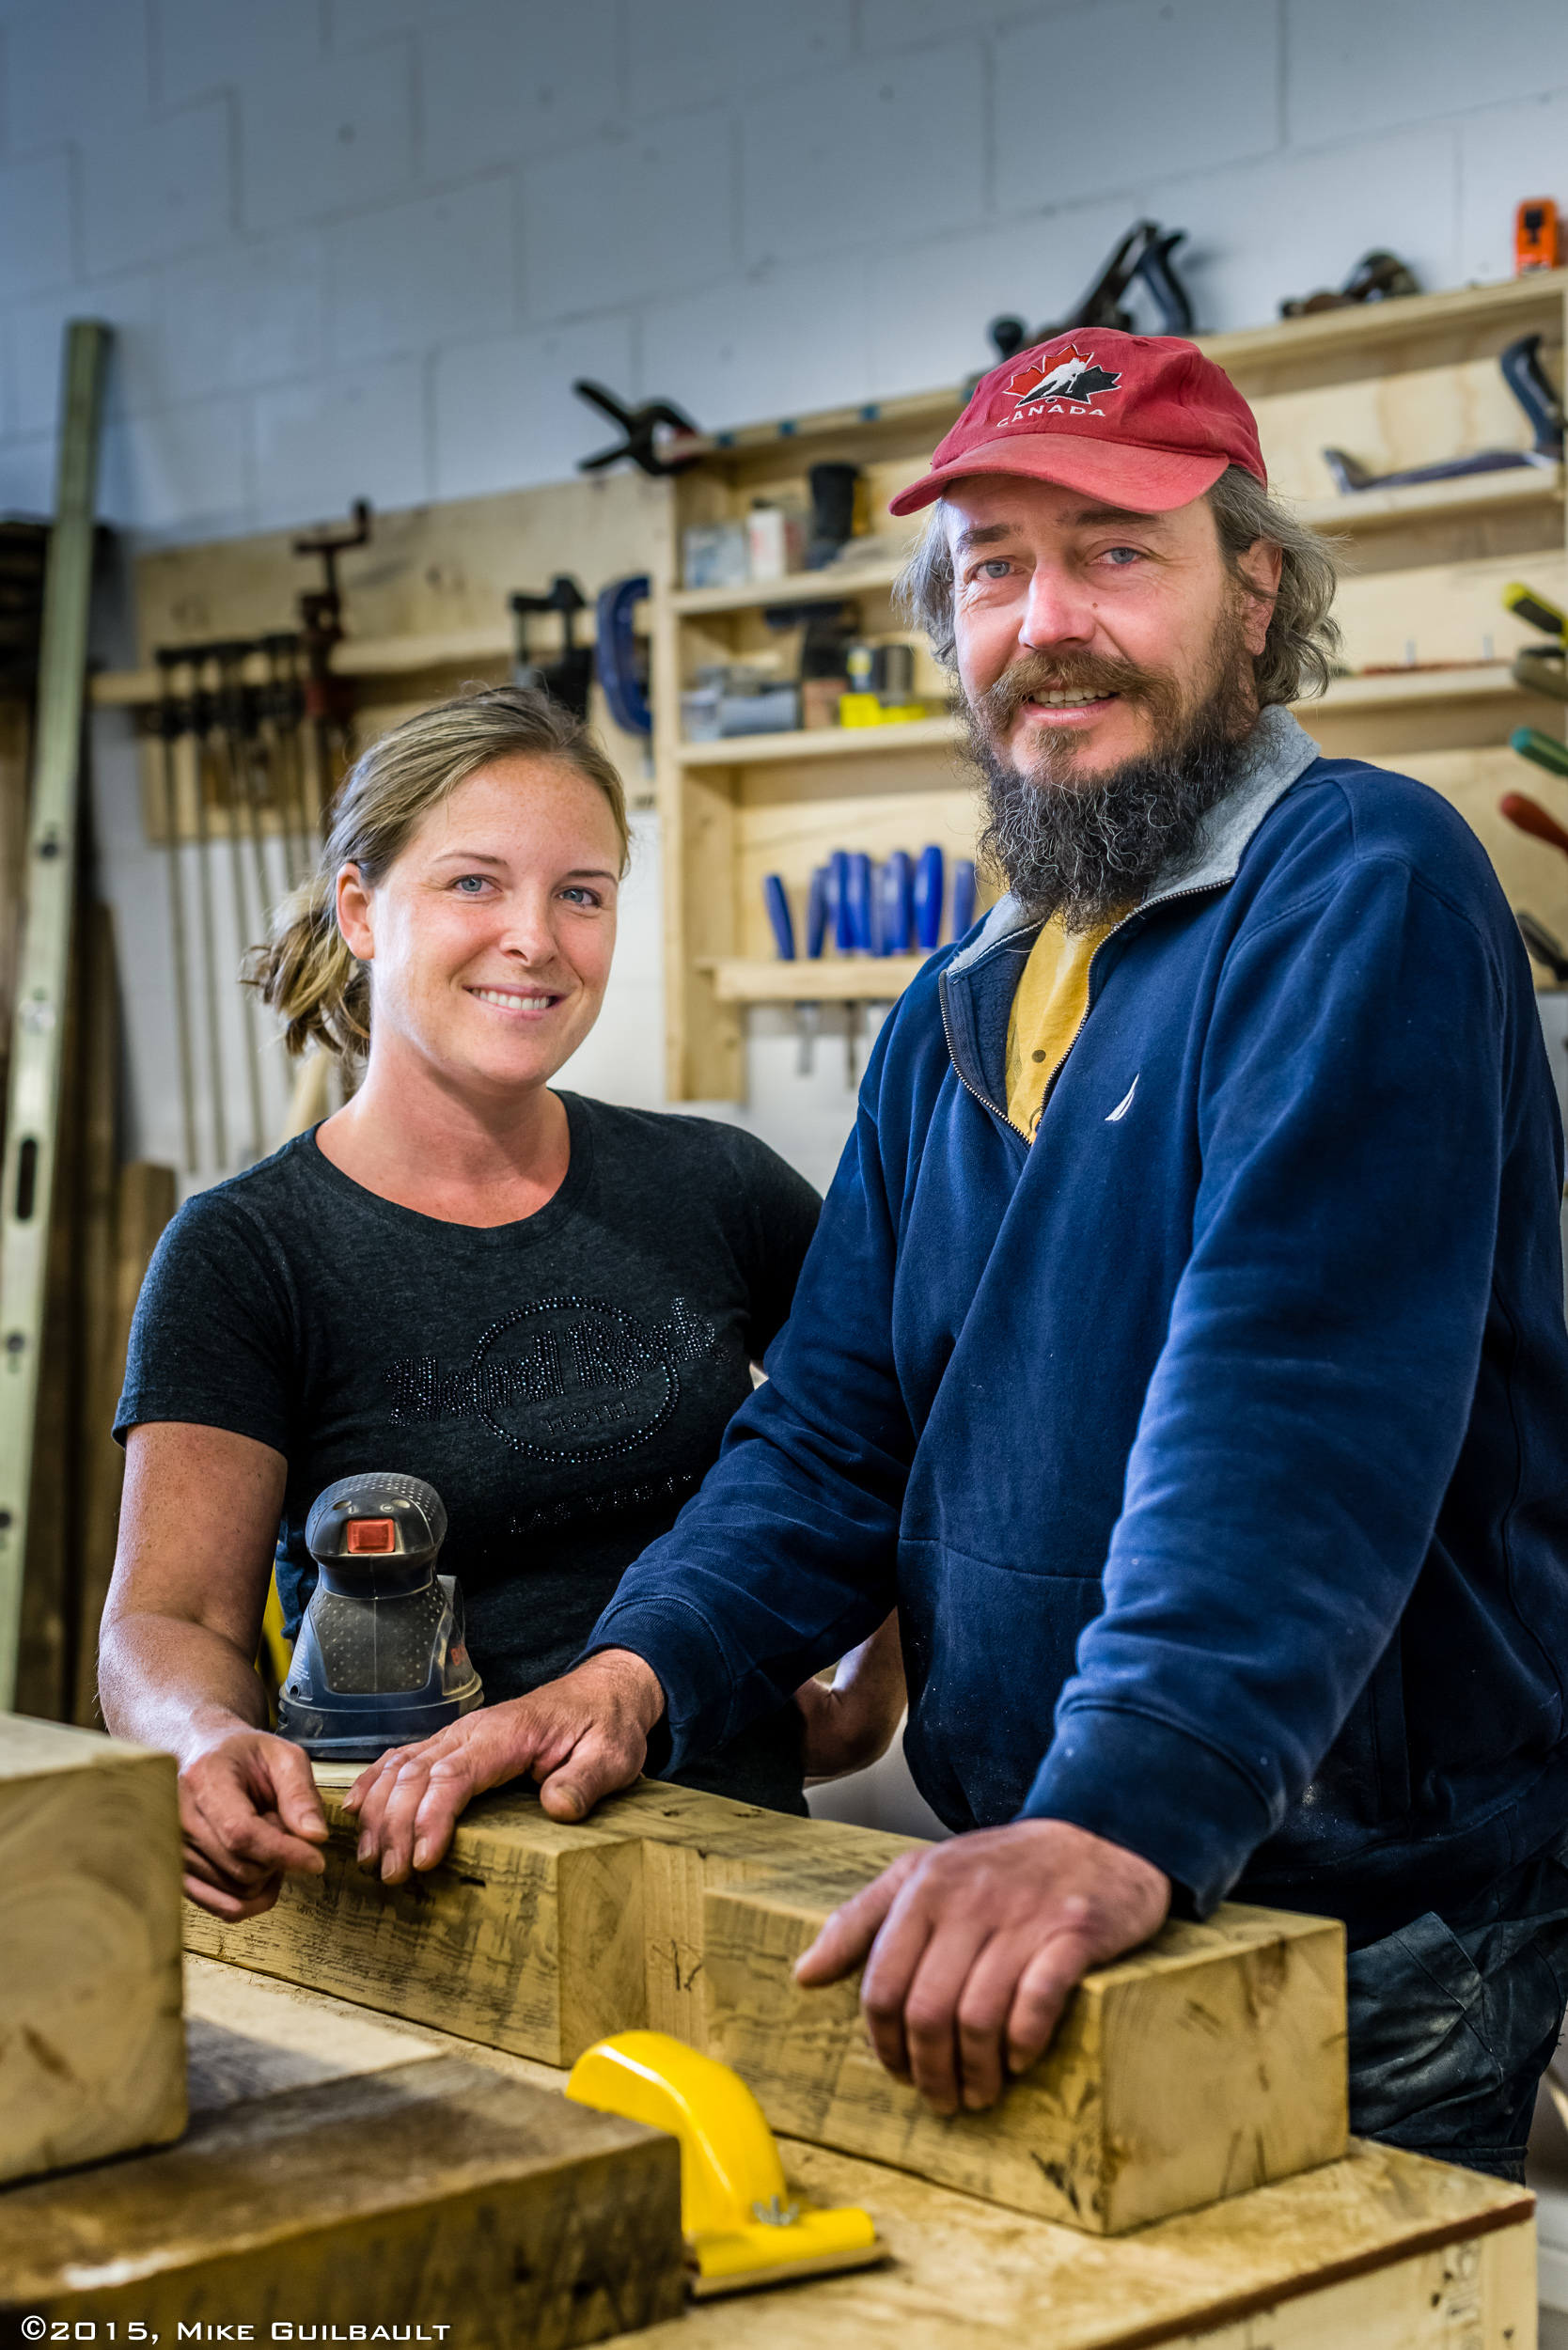 Portrait of a woodworker